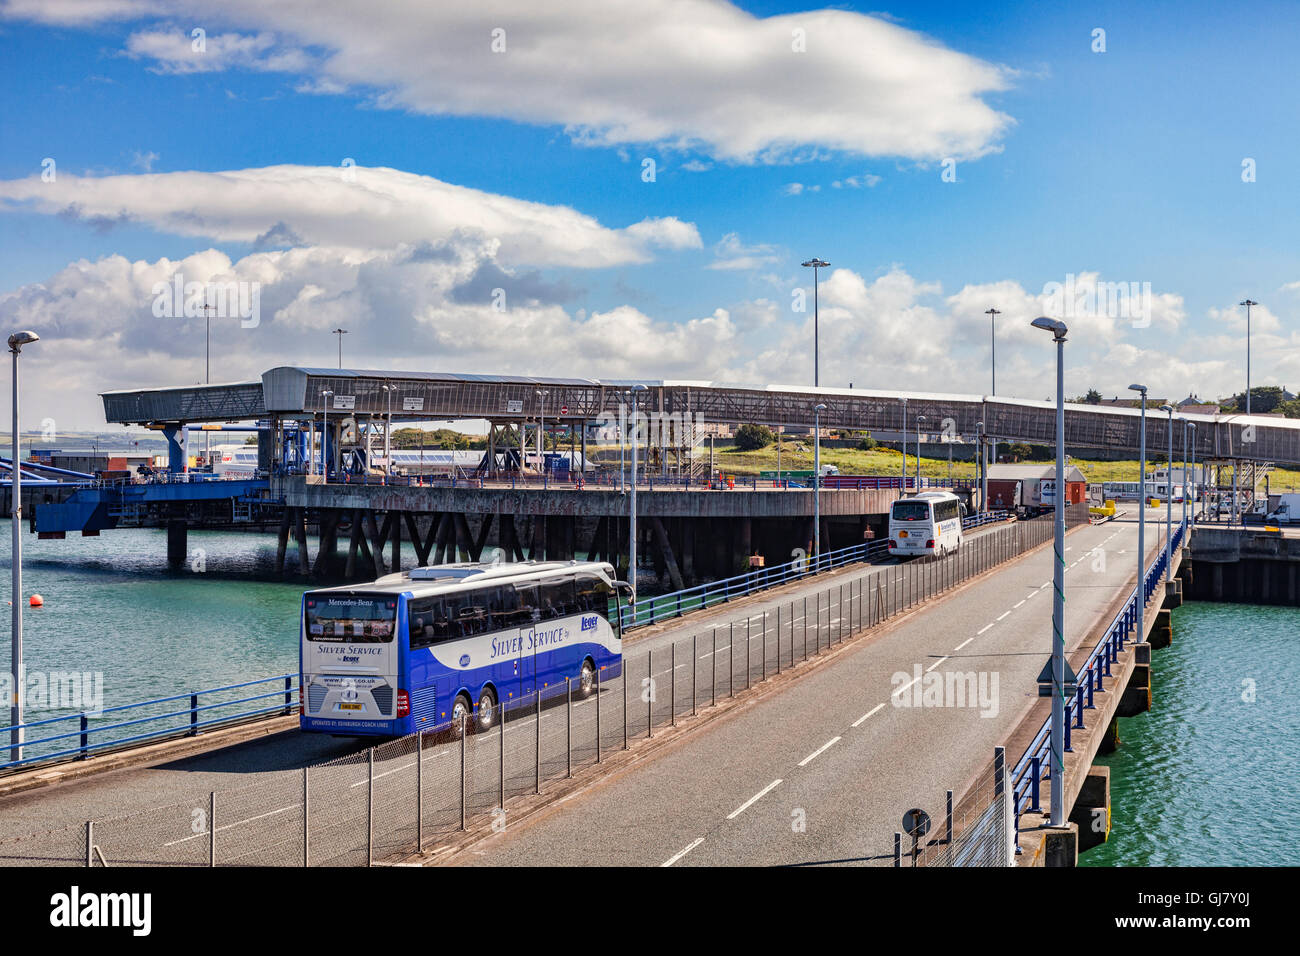 Coaches approaching Holyhead Ferry Terminal, Anglesey, Wales, UK - Stock Image